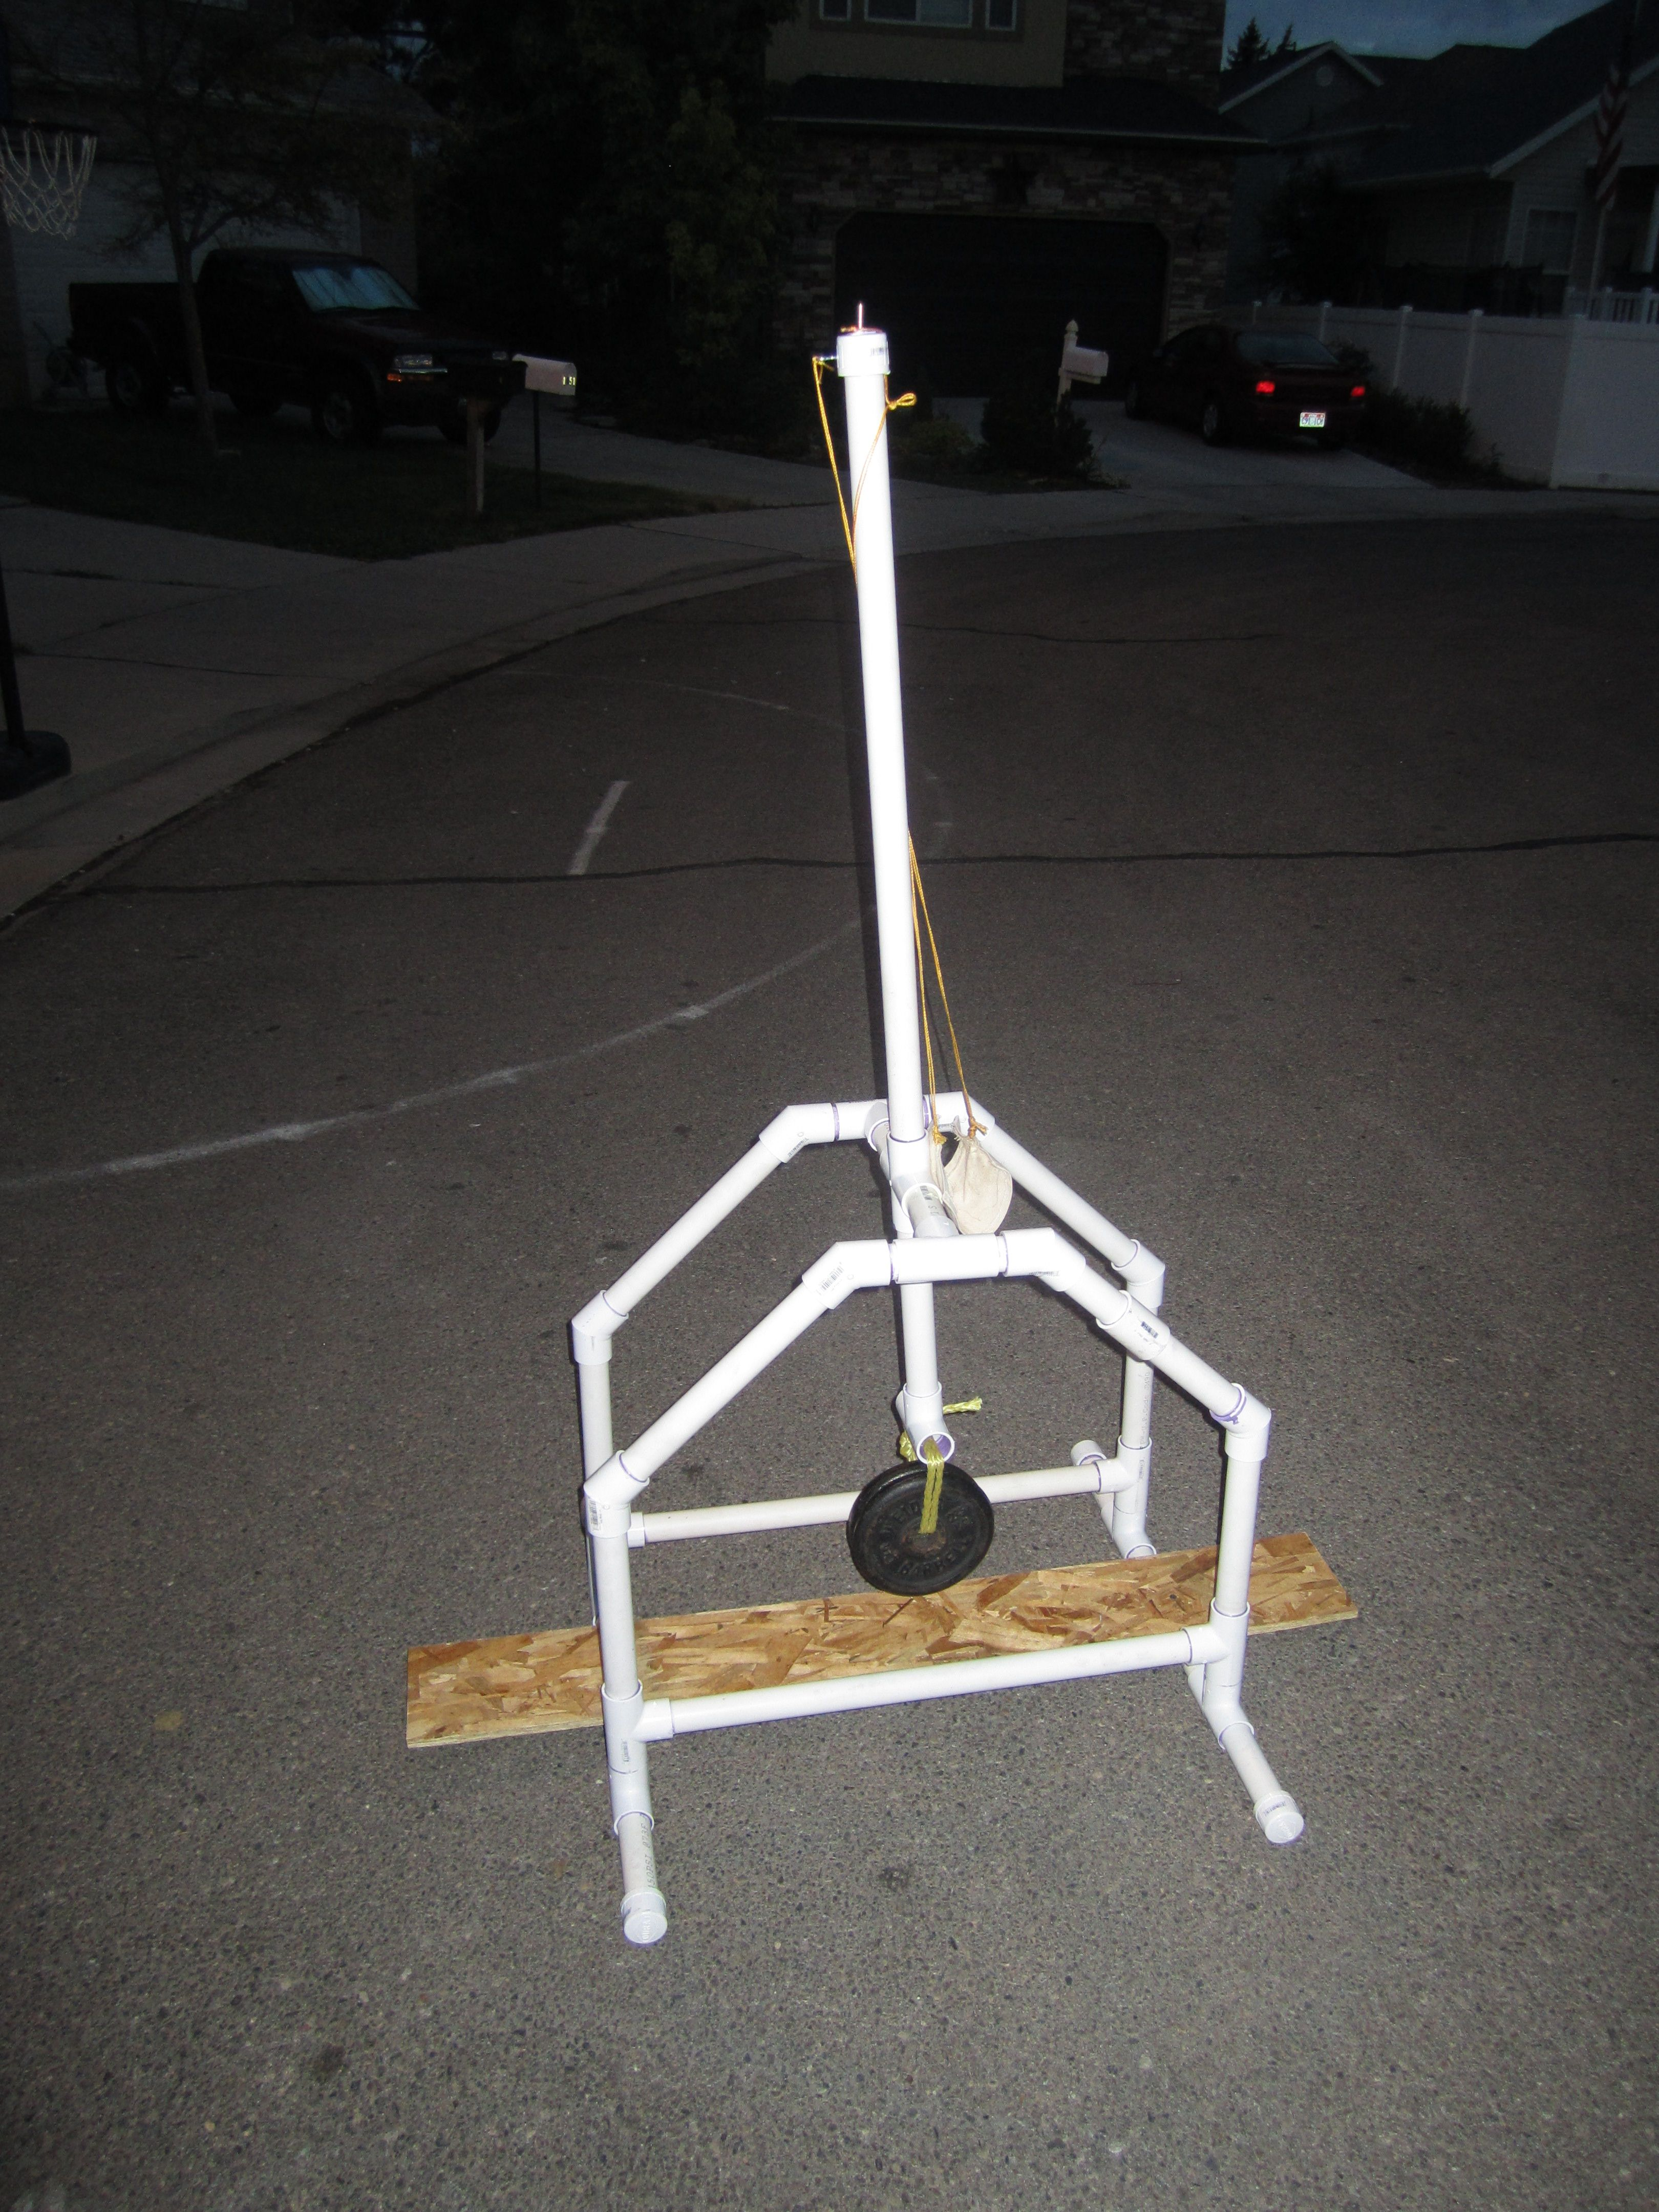 pvc trebuchet i built this trebuchet as a summer project the trebuchet arm length ratio is 3 1 the counterweight is 100 1  [ 3240 x 4320 Pixel ]